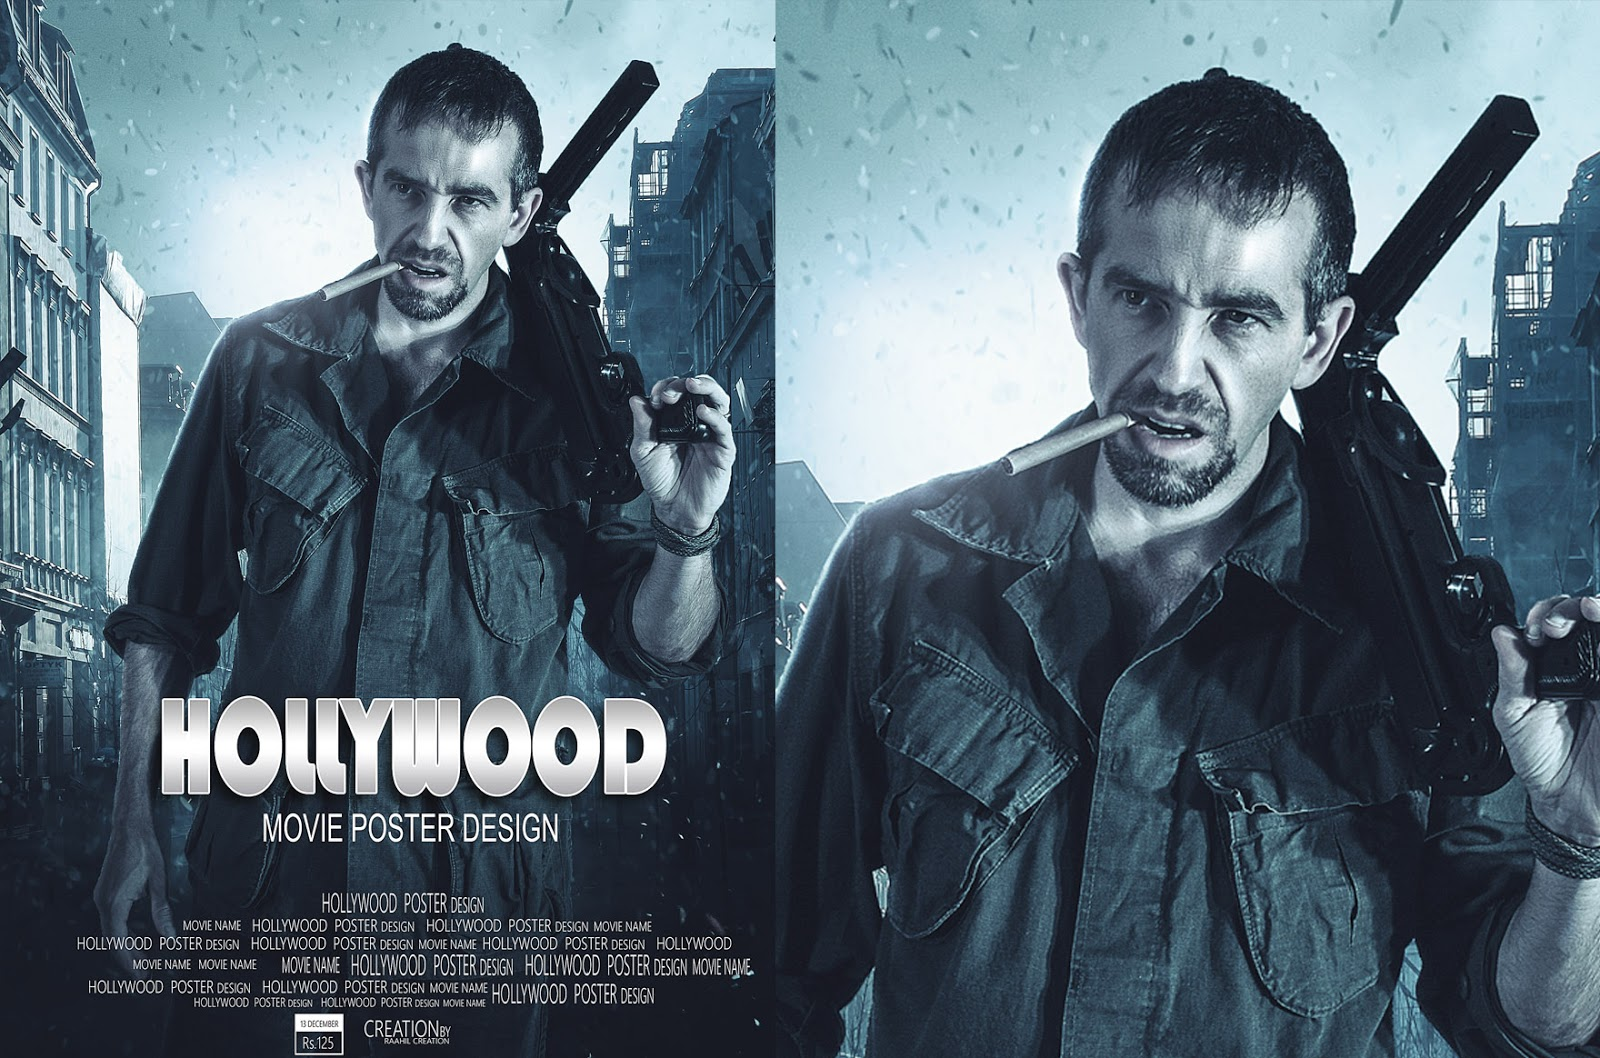 Hollywood Movie Poster Design - Photoshop Tutorial - Raahil